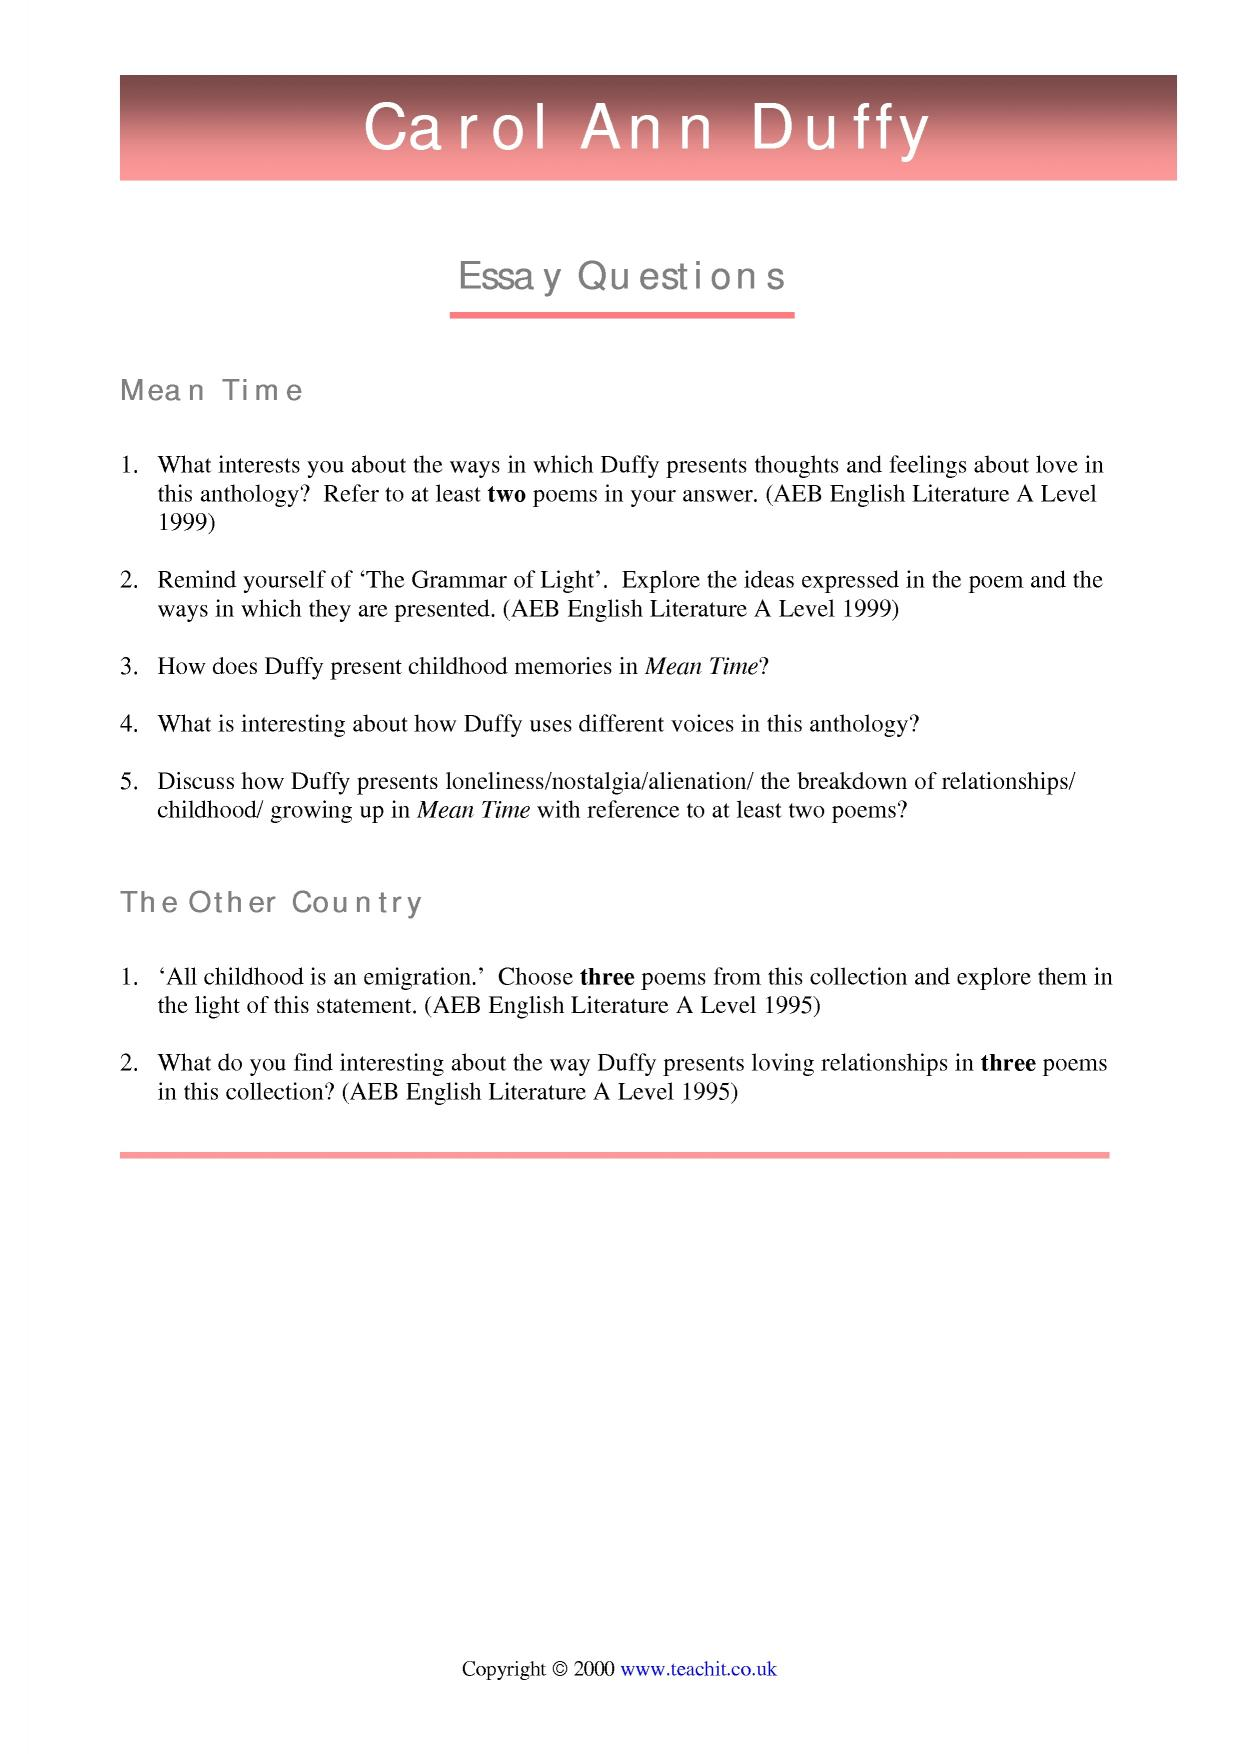 carol ann duffys 1993 collection mean time essay We will write a cheap essay sample on carol ann duffy specifically for you for only $1290 the other country (1990) mean time (1993) carol anne duffy draft.